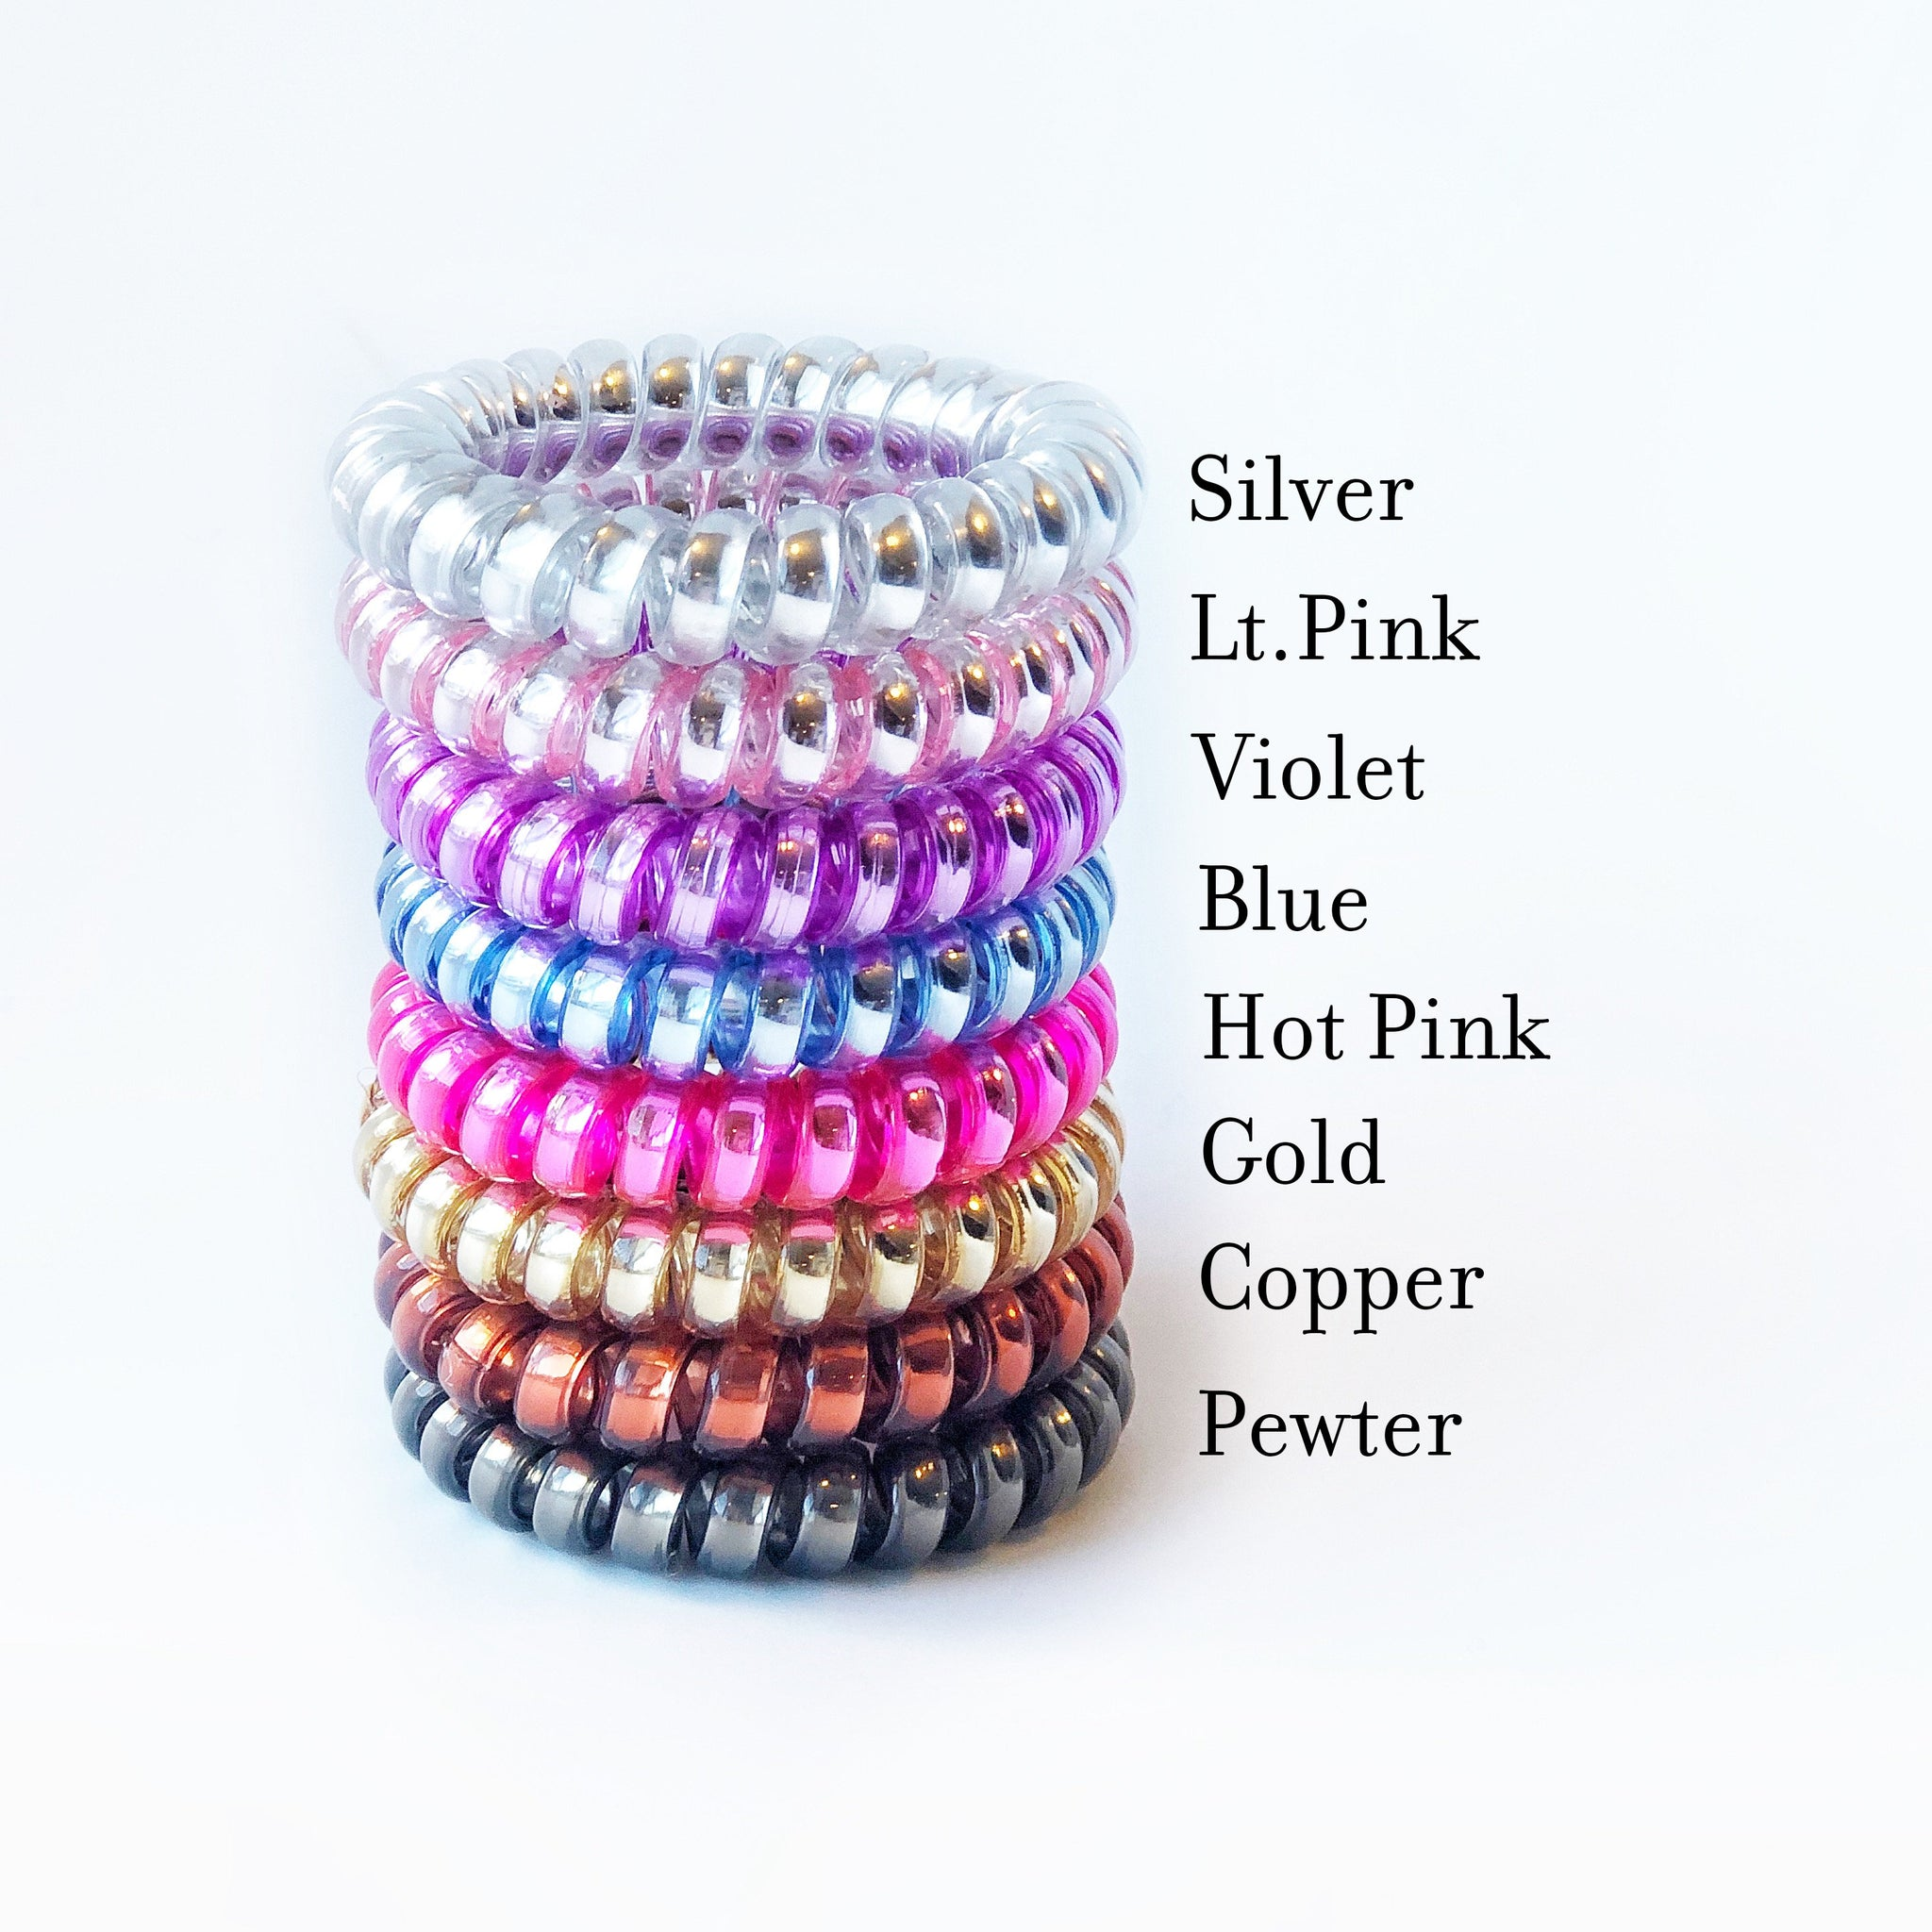 Dirty Thirty 30th Birthday Party Favors for Women, Spiral Hair Ties - @PlumPolkaDot